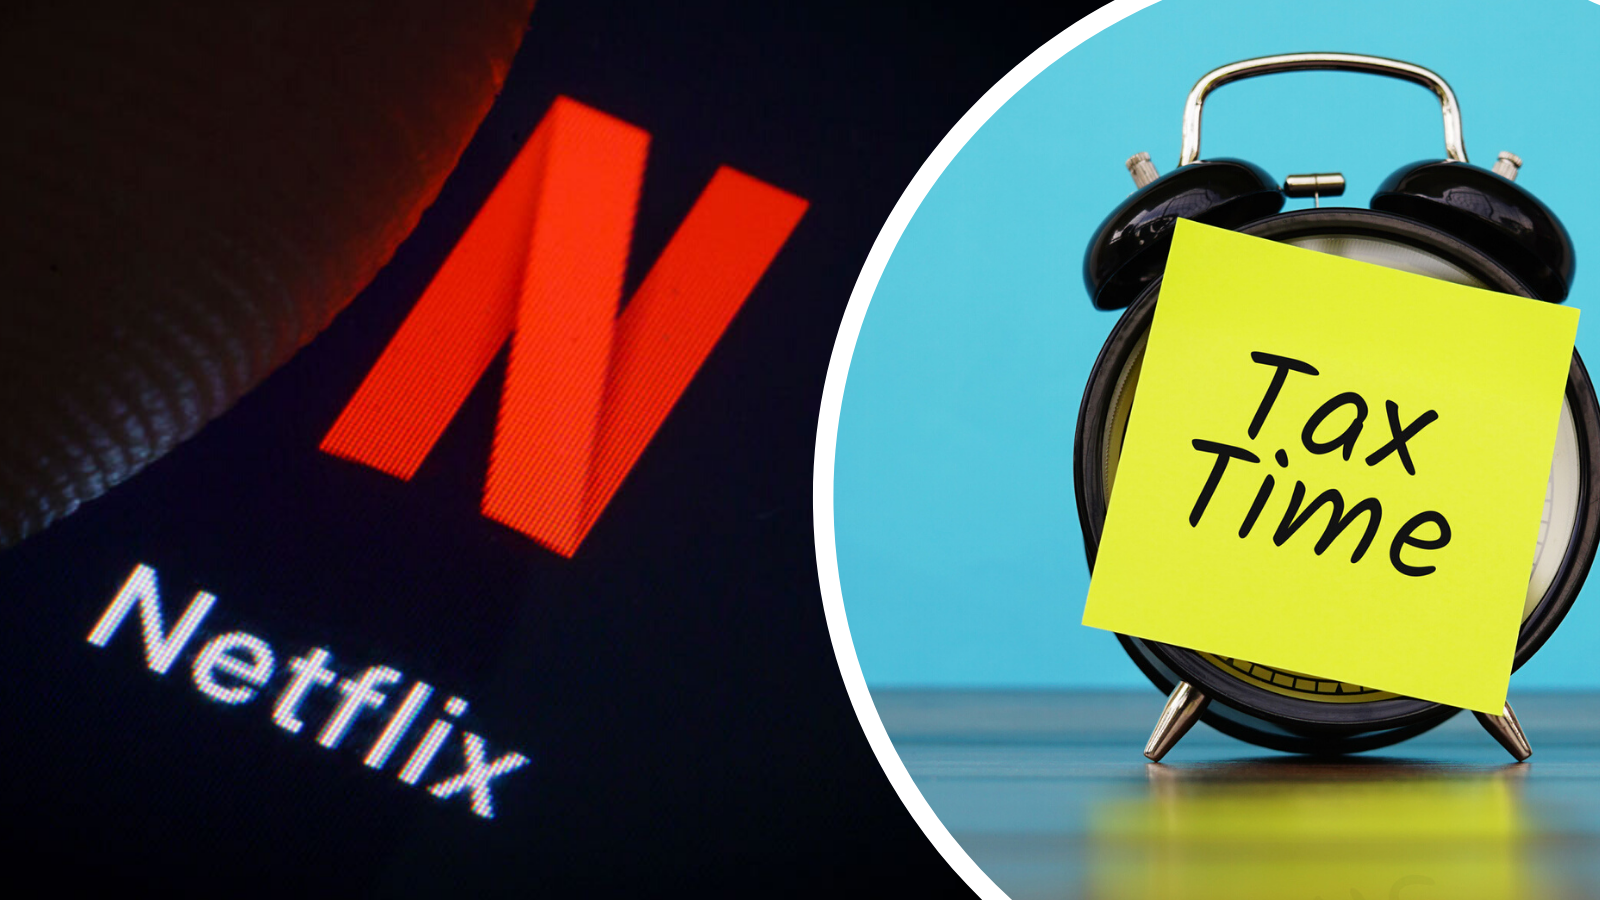 'Your $13.99 Netflix subscription is more than what the company paid in tax'